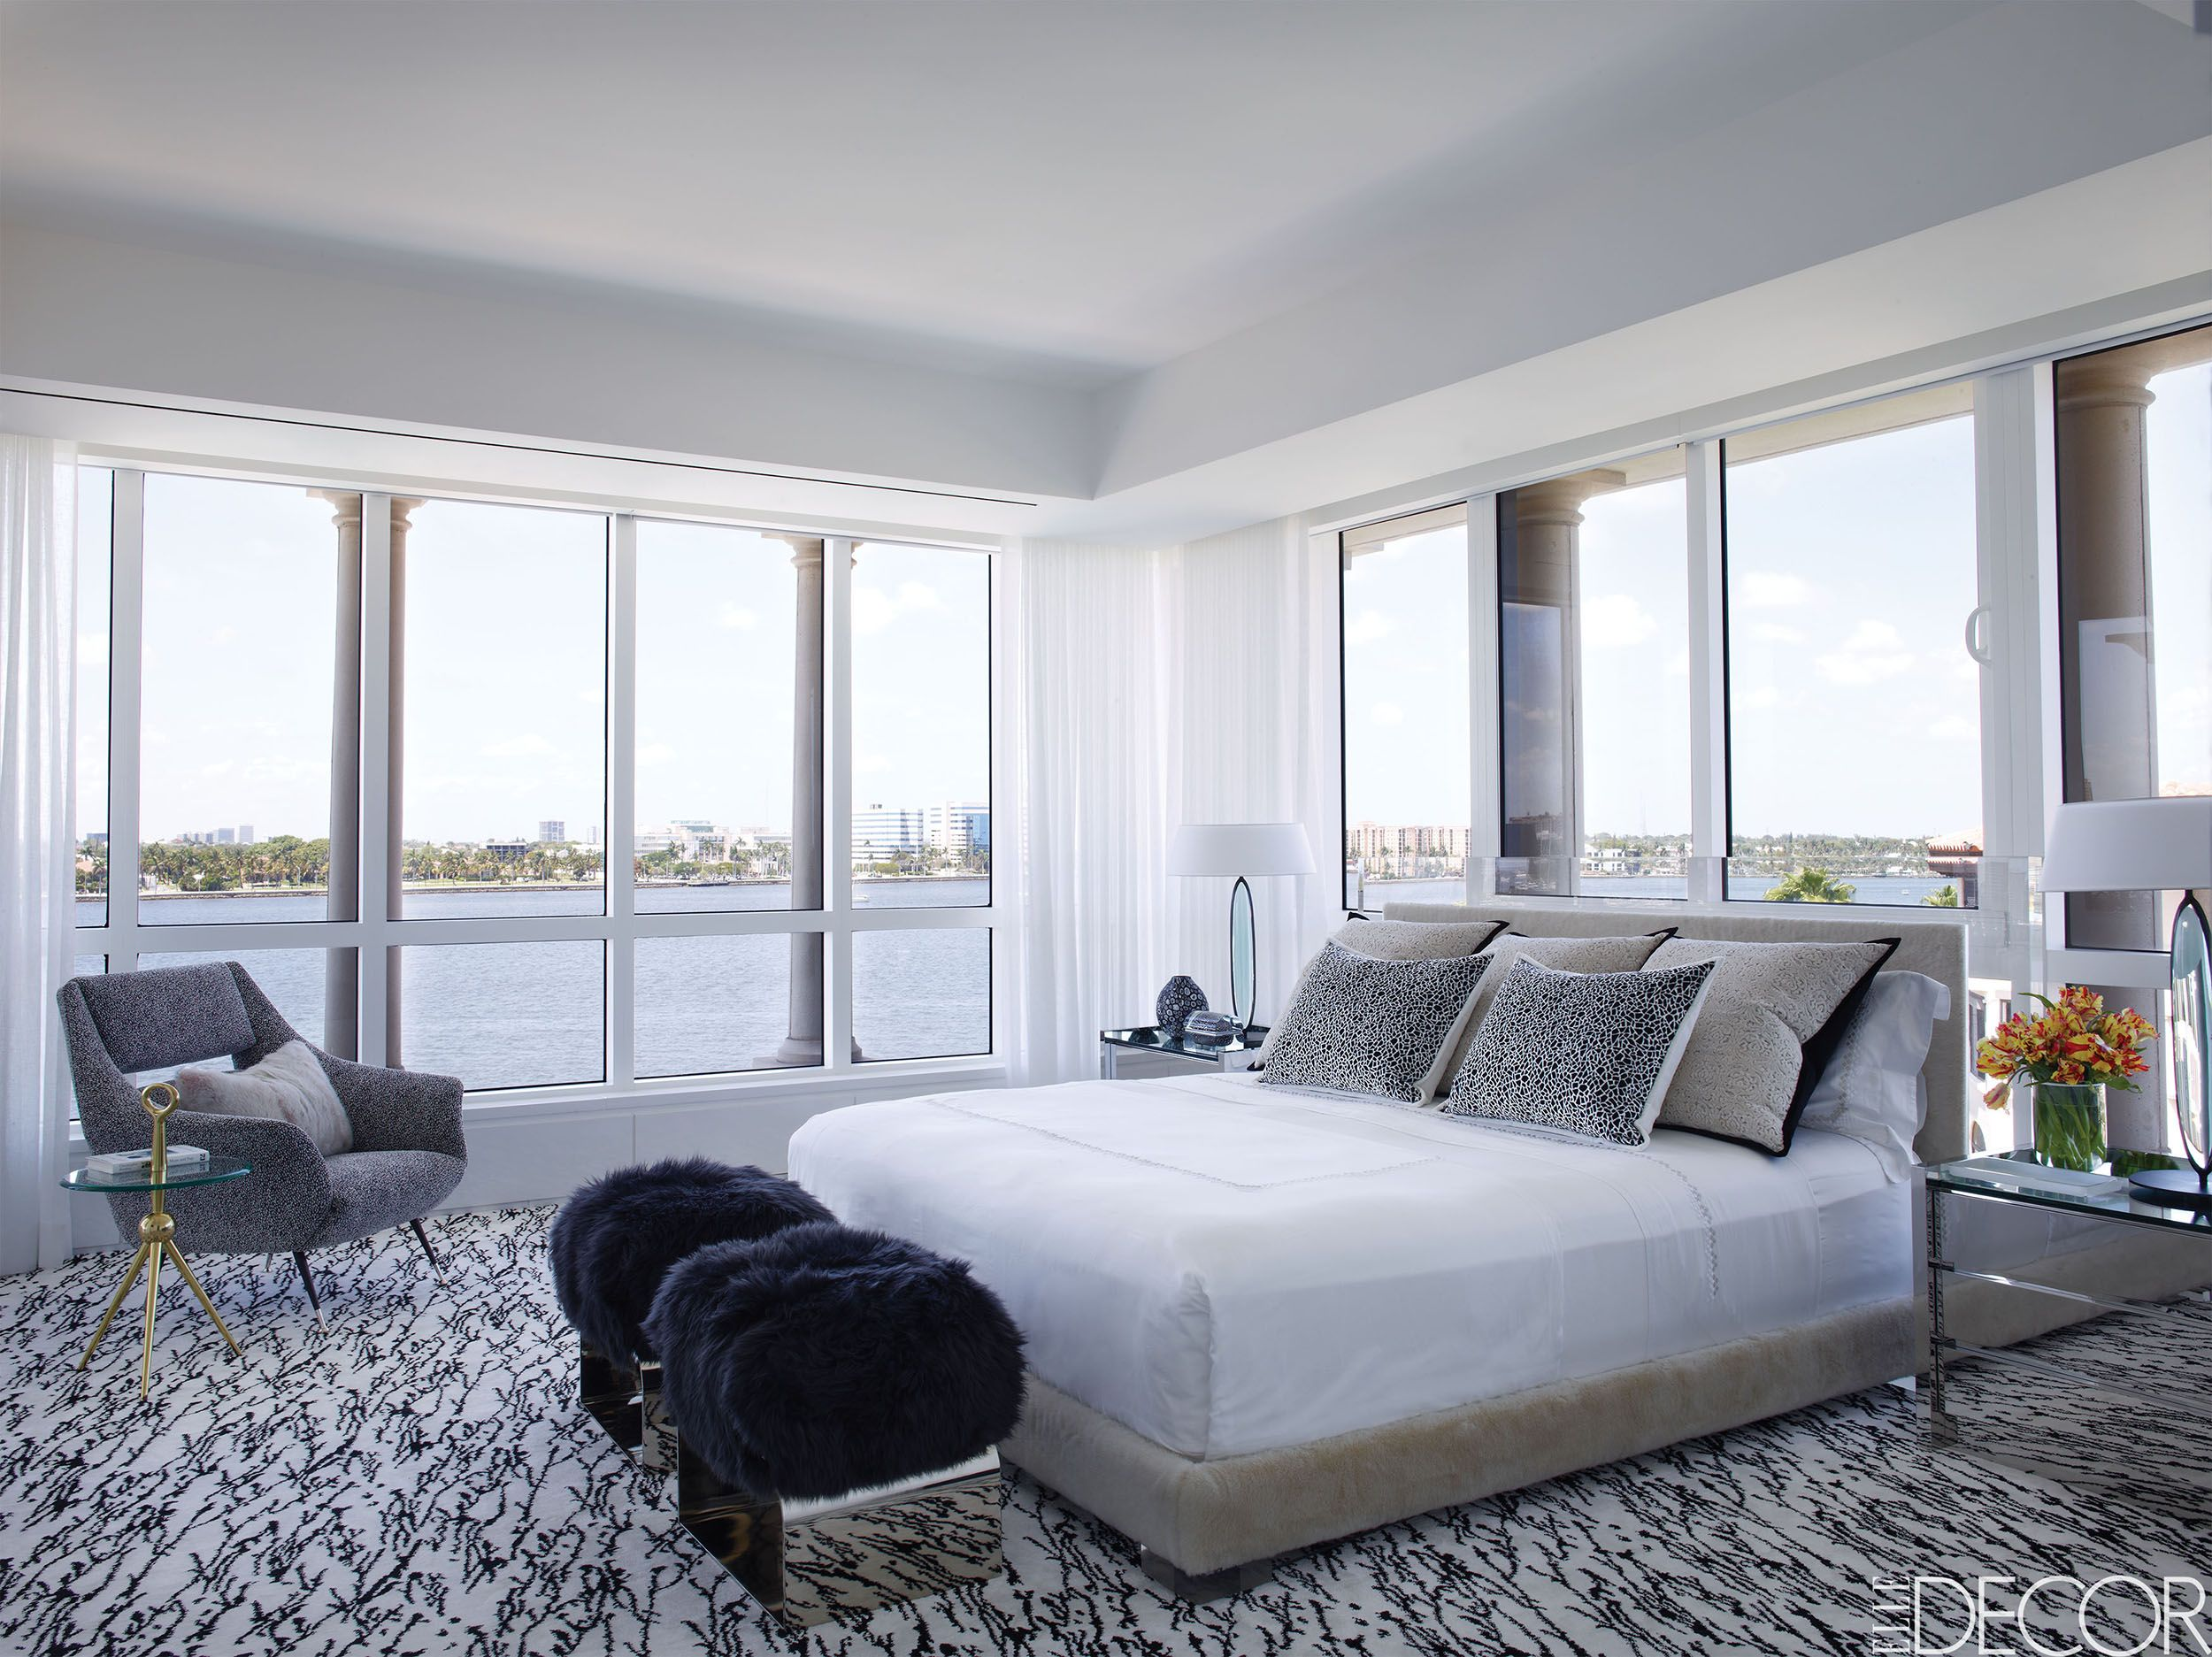 Grey Rooms Cool Grey Bedrooms With Stylish Design  Gray Bedroom Ideas Inspiration Design